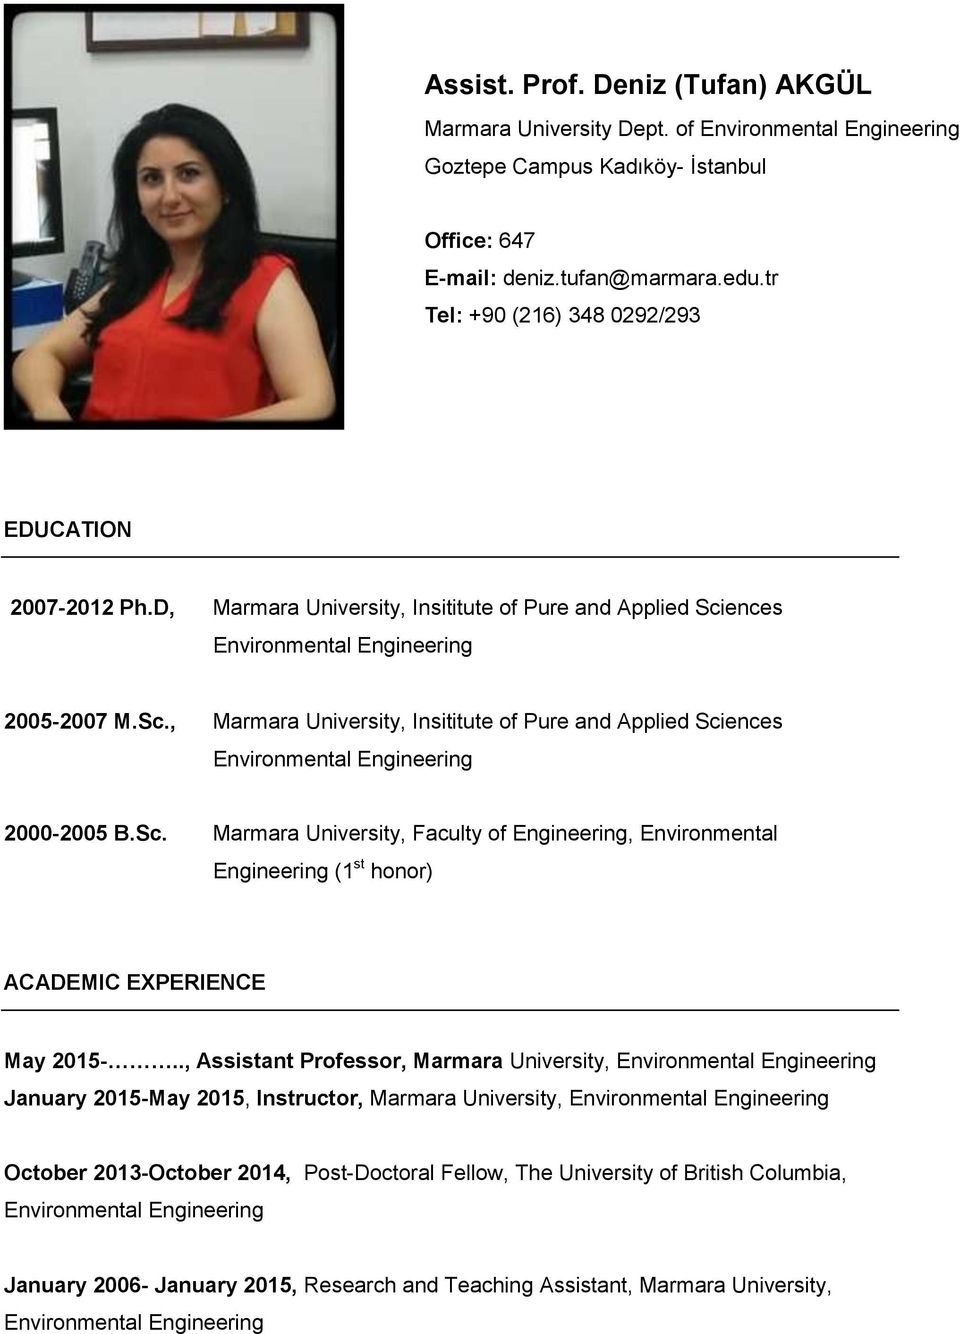 ences 2005-2007 M.Sc., Marmara University, Insititute of Pure and Applied Sciences 2000-2005 B.Sc. Marmara University, Faculty of Engineering, Environmental Engineering (1 st honor) ACADEMIC EXPERIENCE May 2015-.